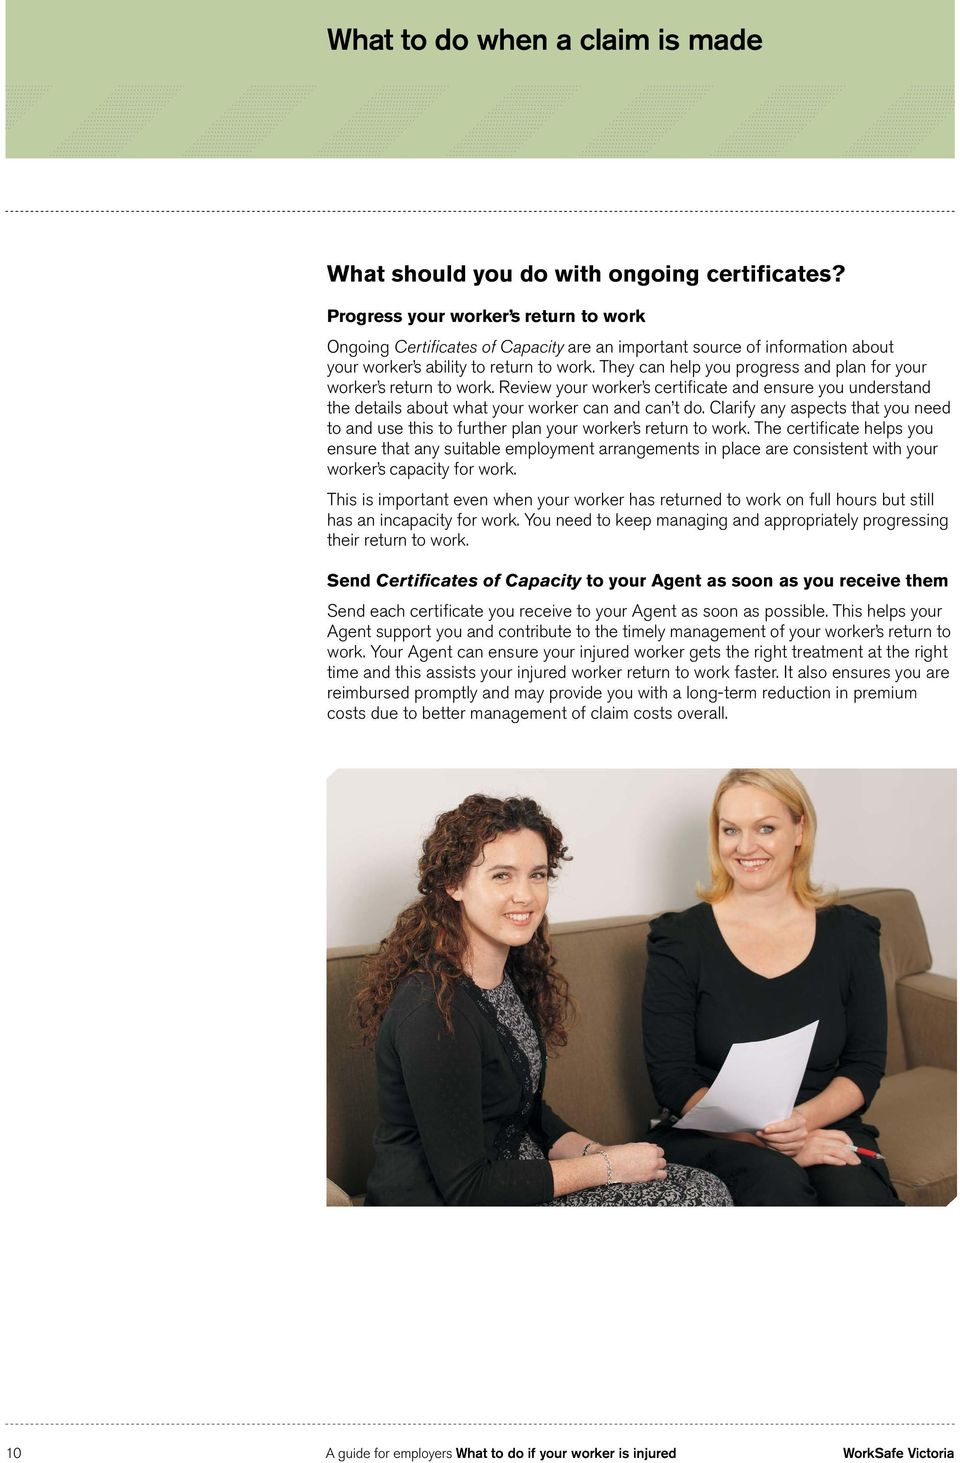 They can help you progress and plan for your worker s return to work. Review your worker s certificate and ensure you understand the details about what your worker can and can t do.